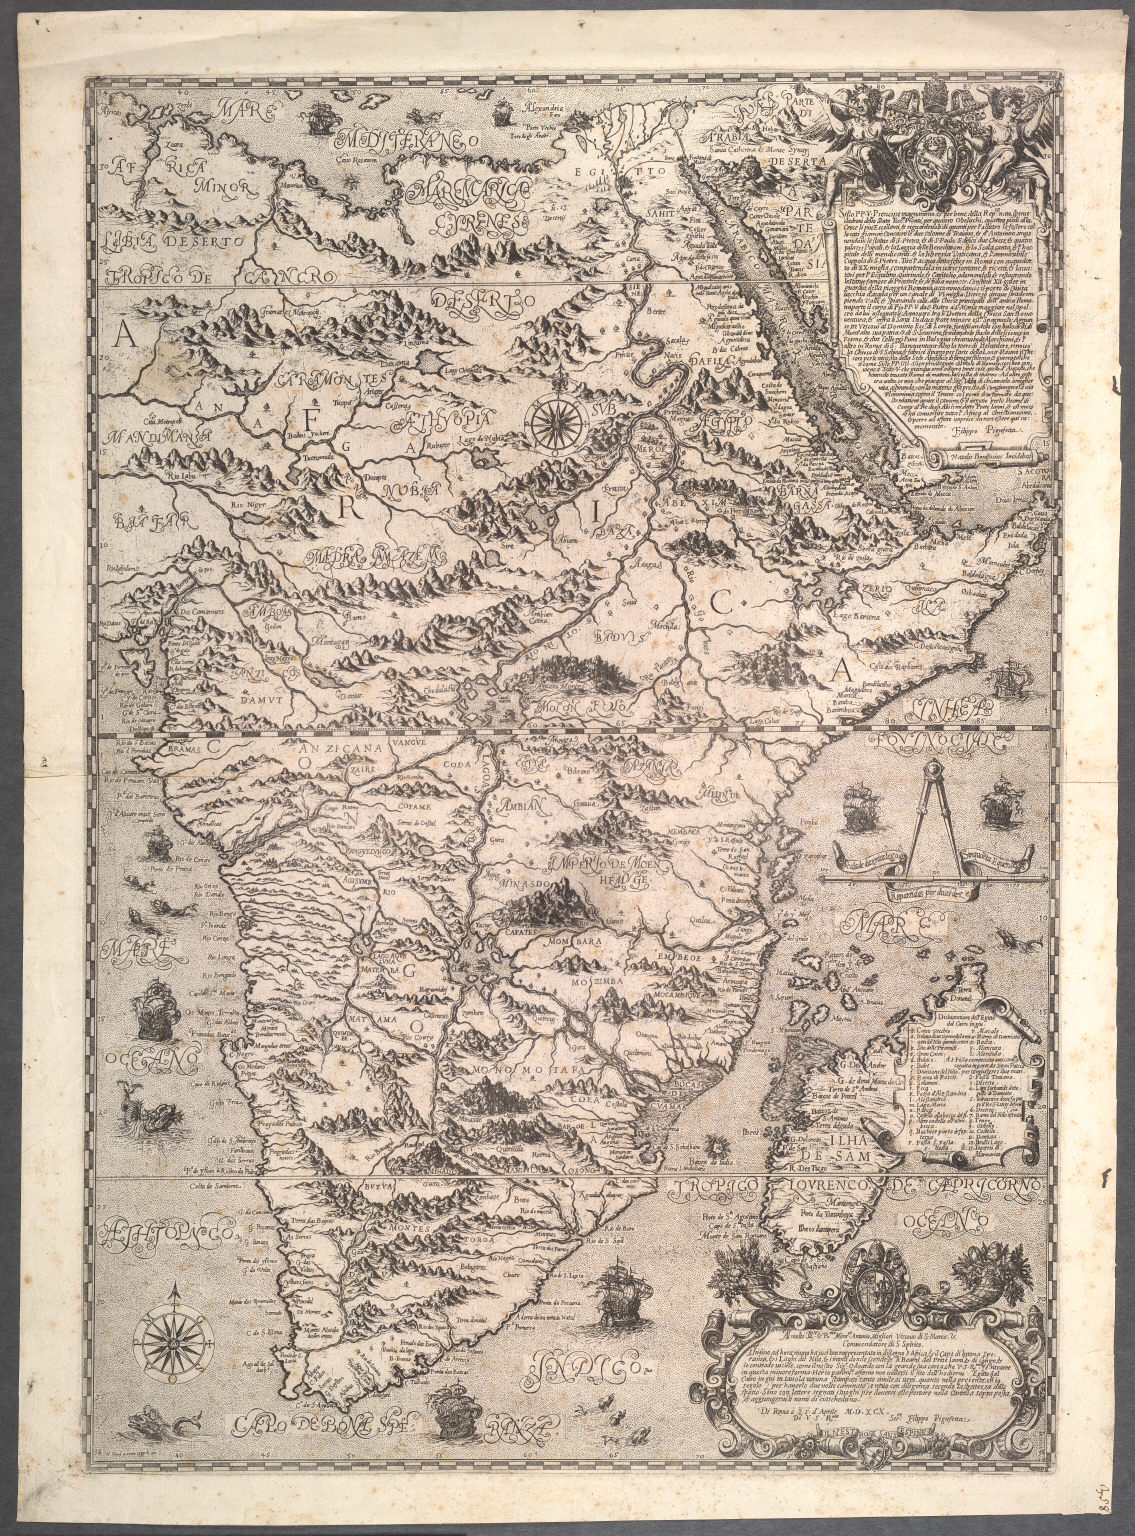 [Depicts Africa from the Mediterranean to The Cape, excluding West Africa]